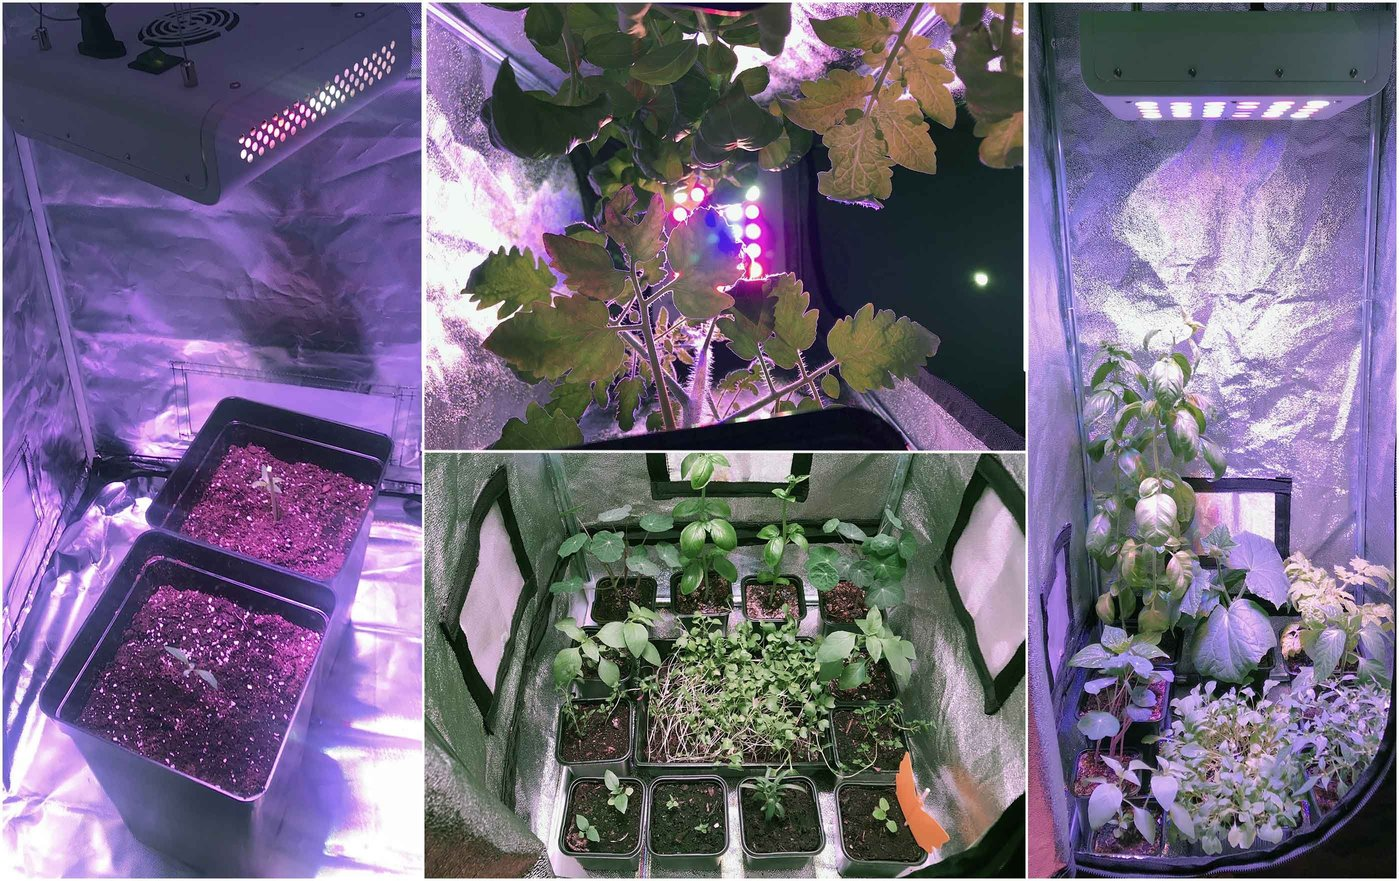 Z2 LED Grow Light